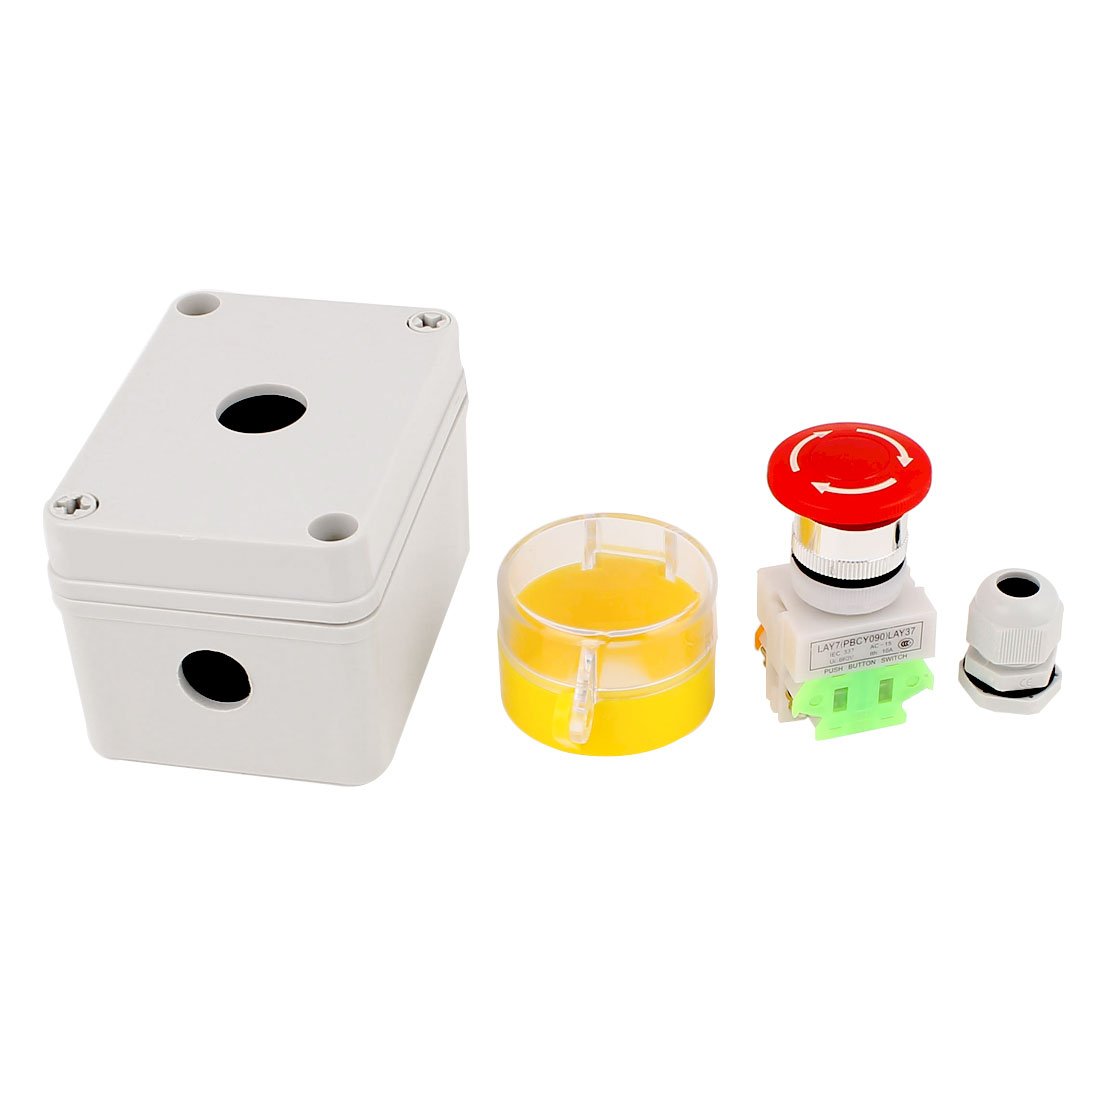 600V 10A Rotary Reset Red Emergency Stop Pushbutton Switch Control Box w PG11 Cable Gland Set